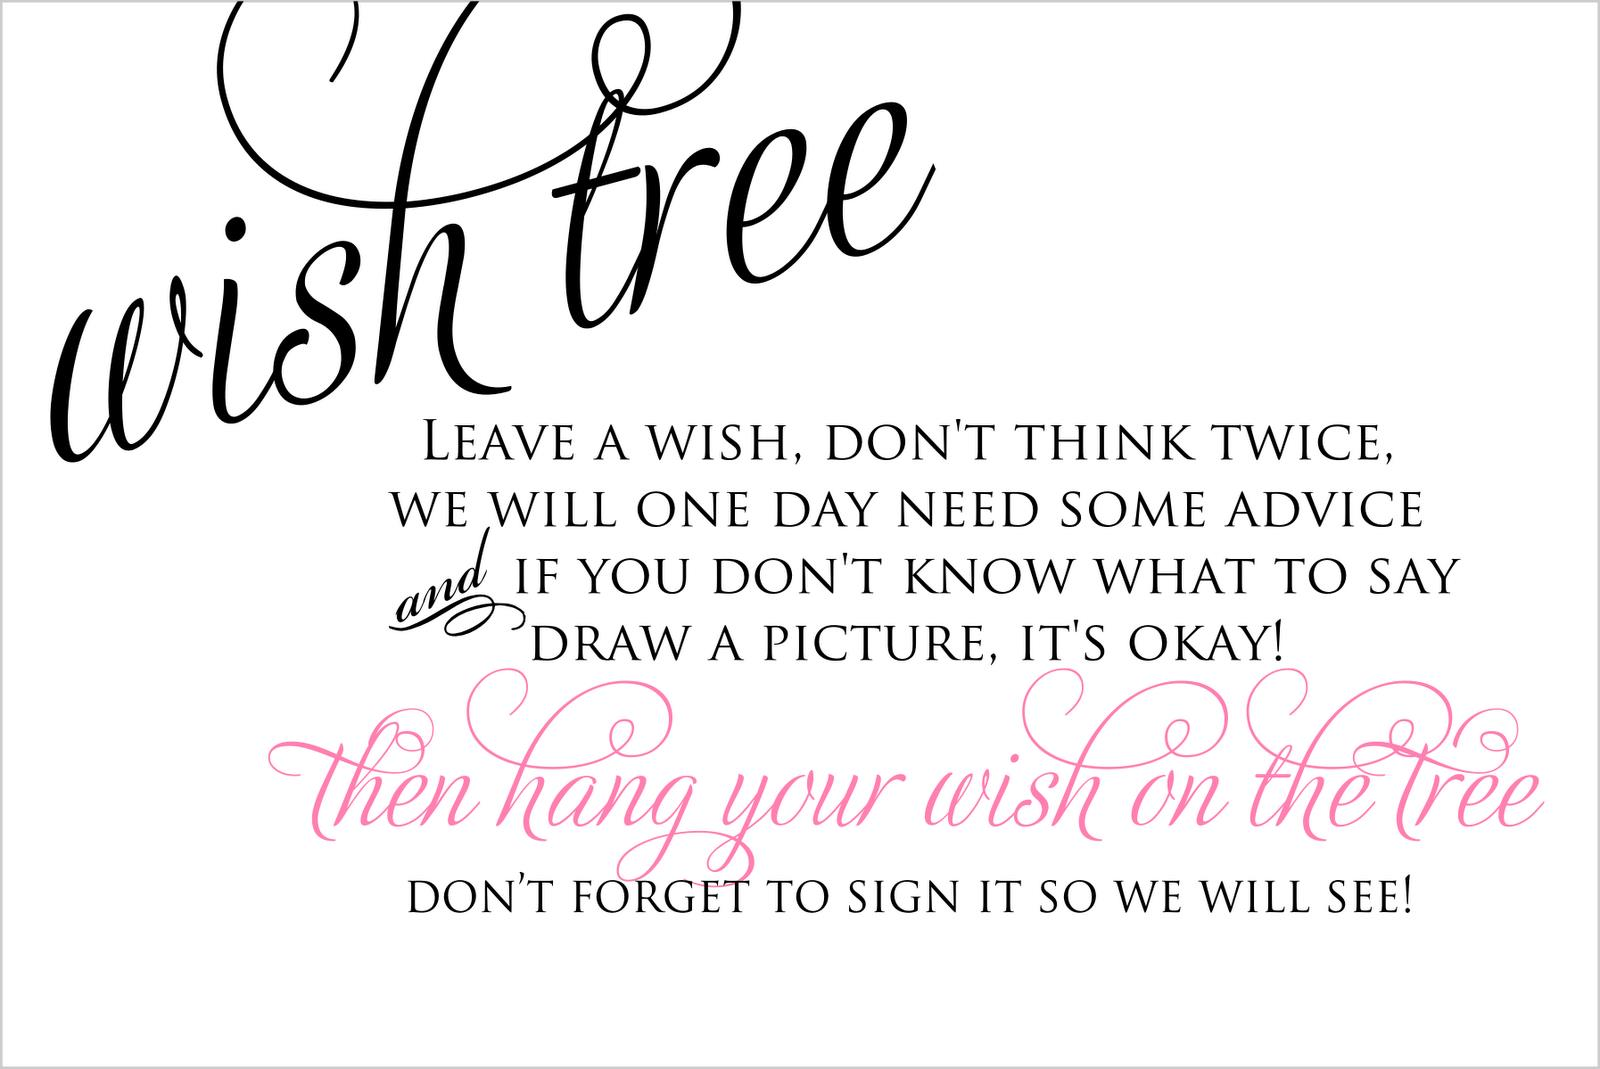 birthday wish tree wording ; birthday%2520wishing%2520tree%2520poem%2520;%2520baby-shower-gift-card-tree-ideas-wish+tree3